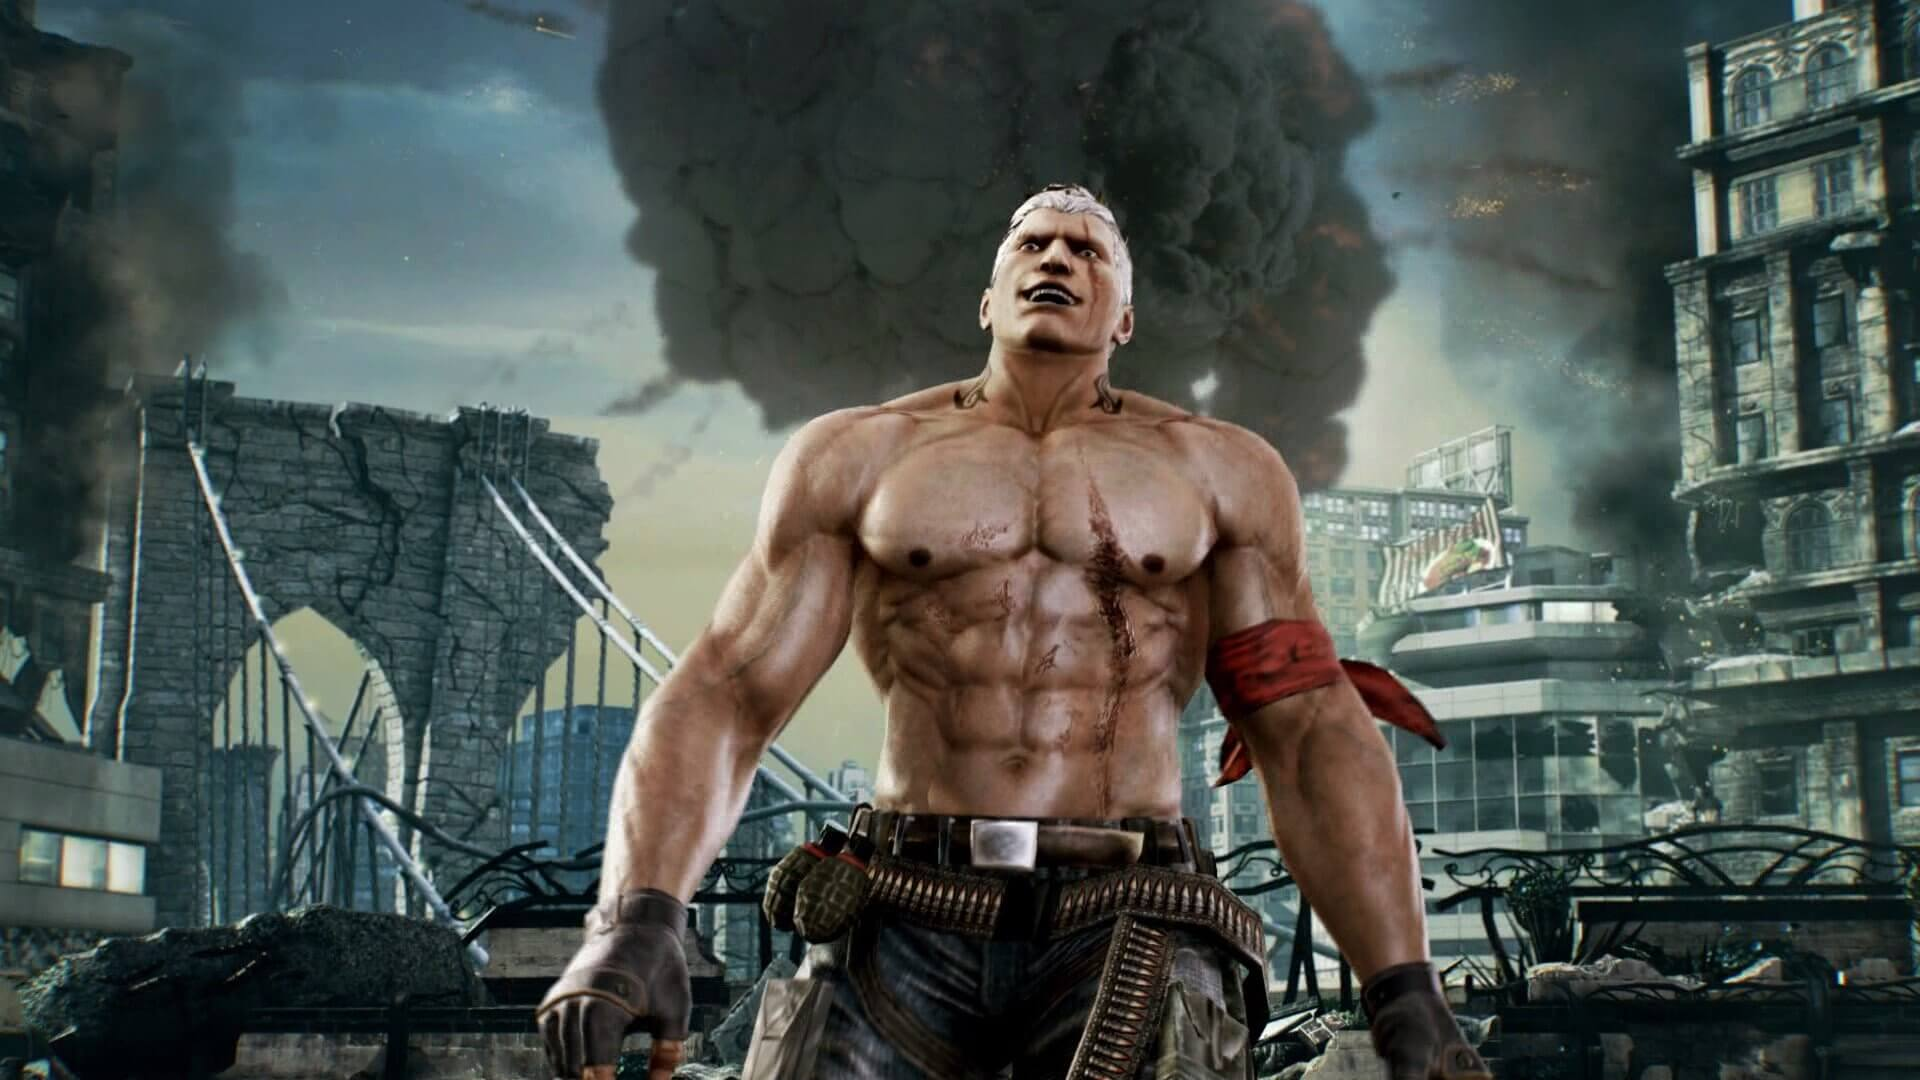 Tekken 7 players were asked to back up any replay data